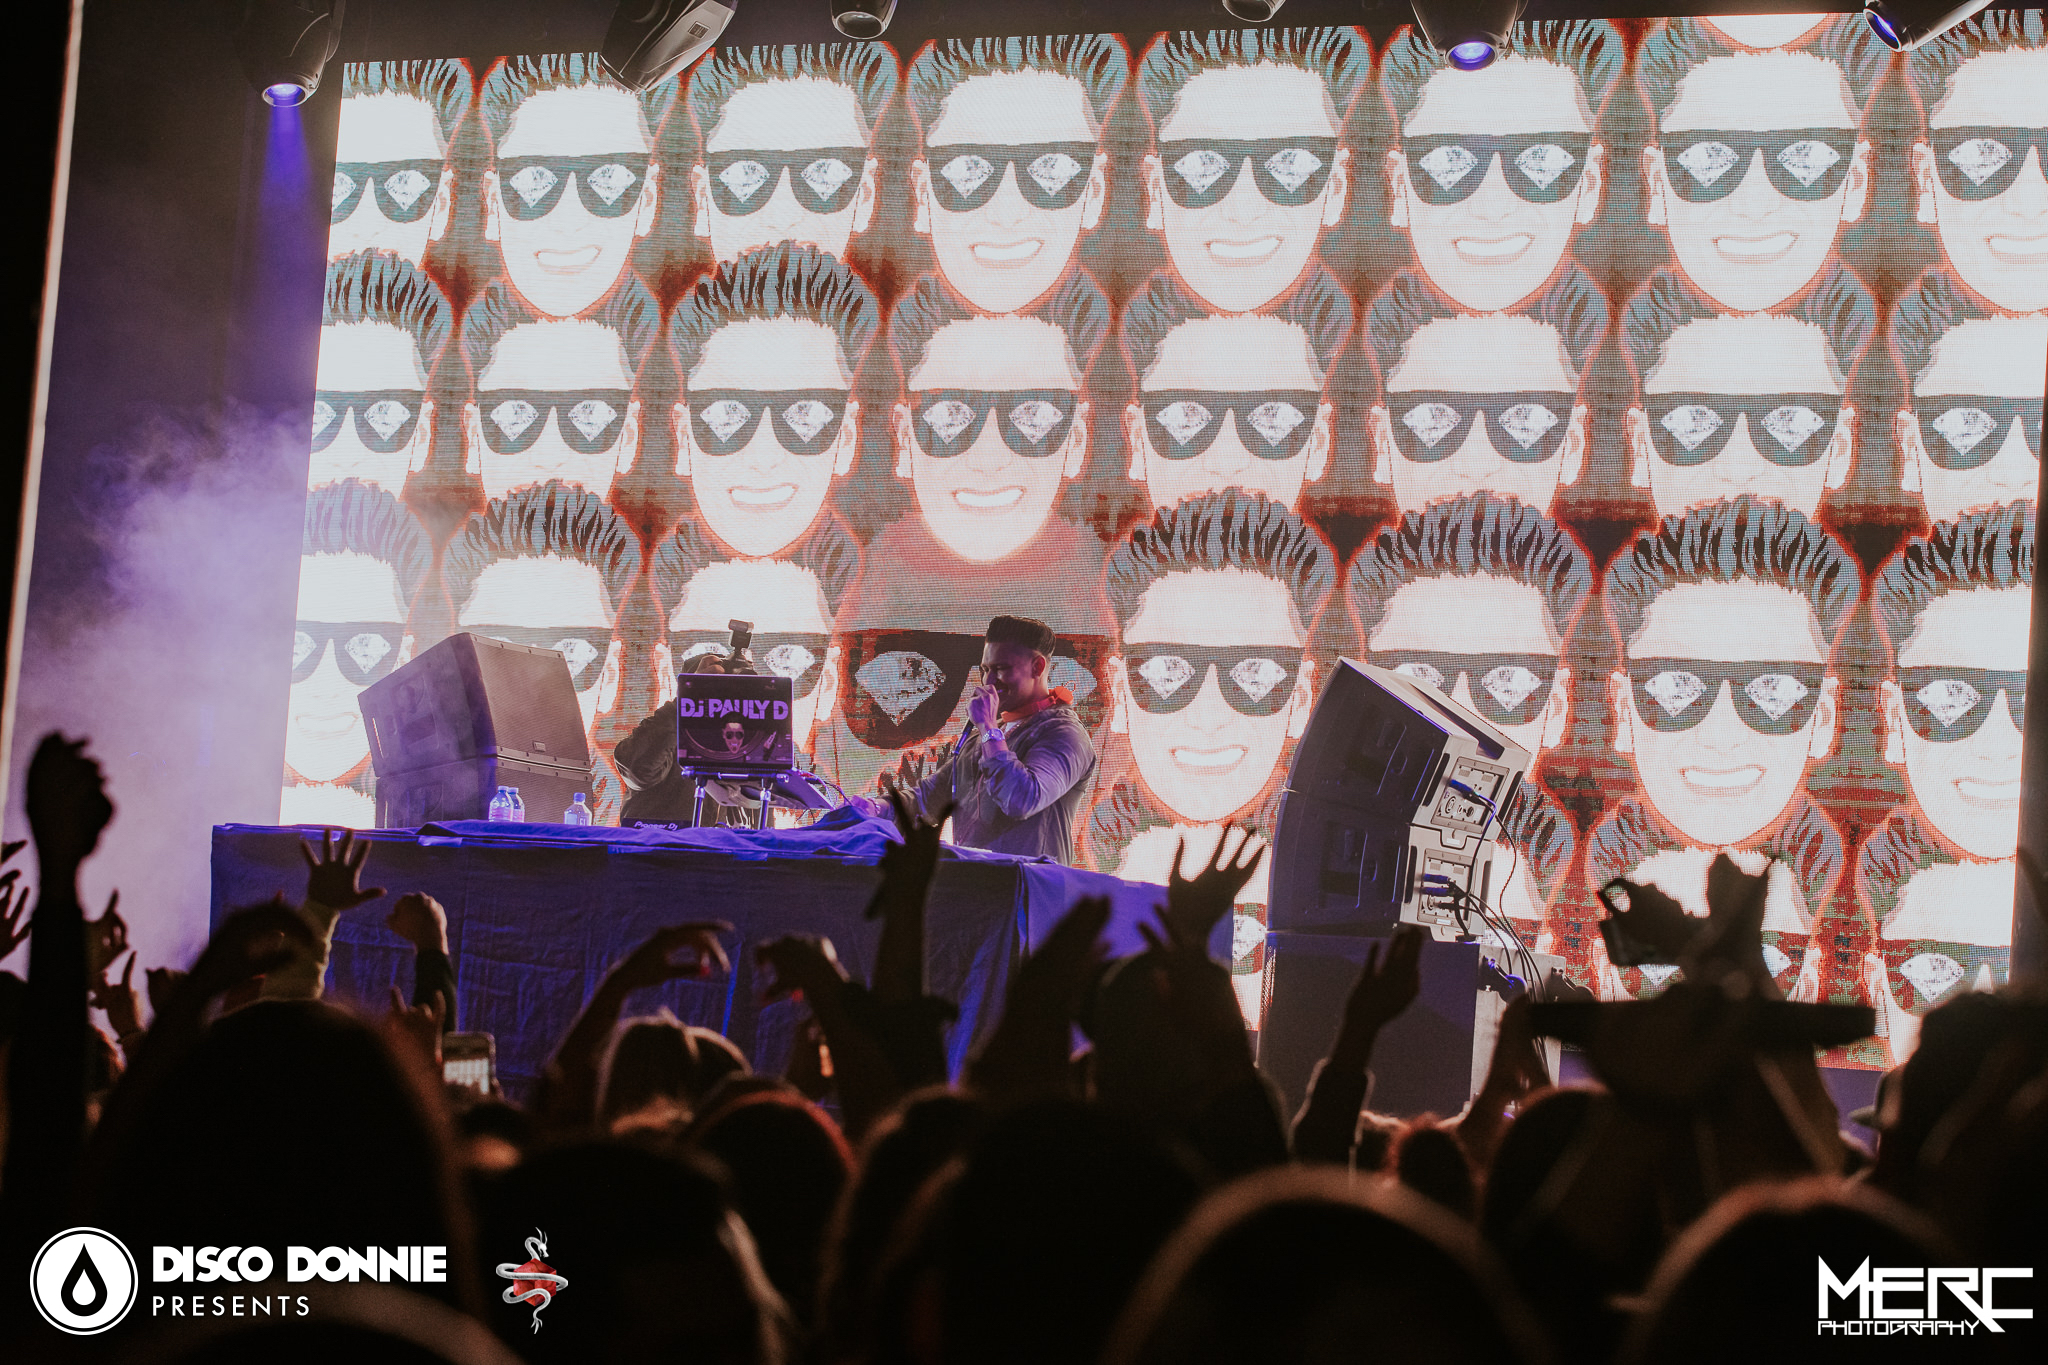 Photos from DJ Pauly D at Roseland Theater